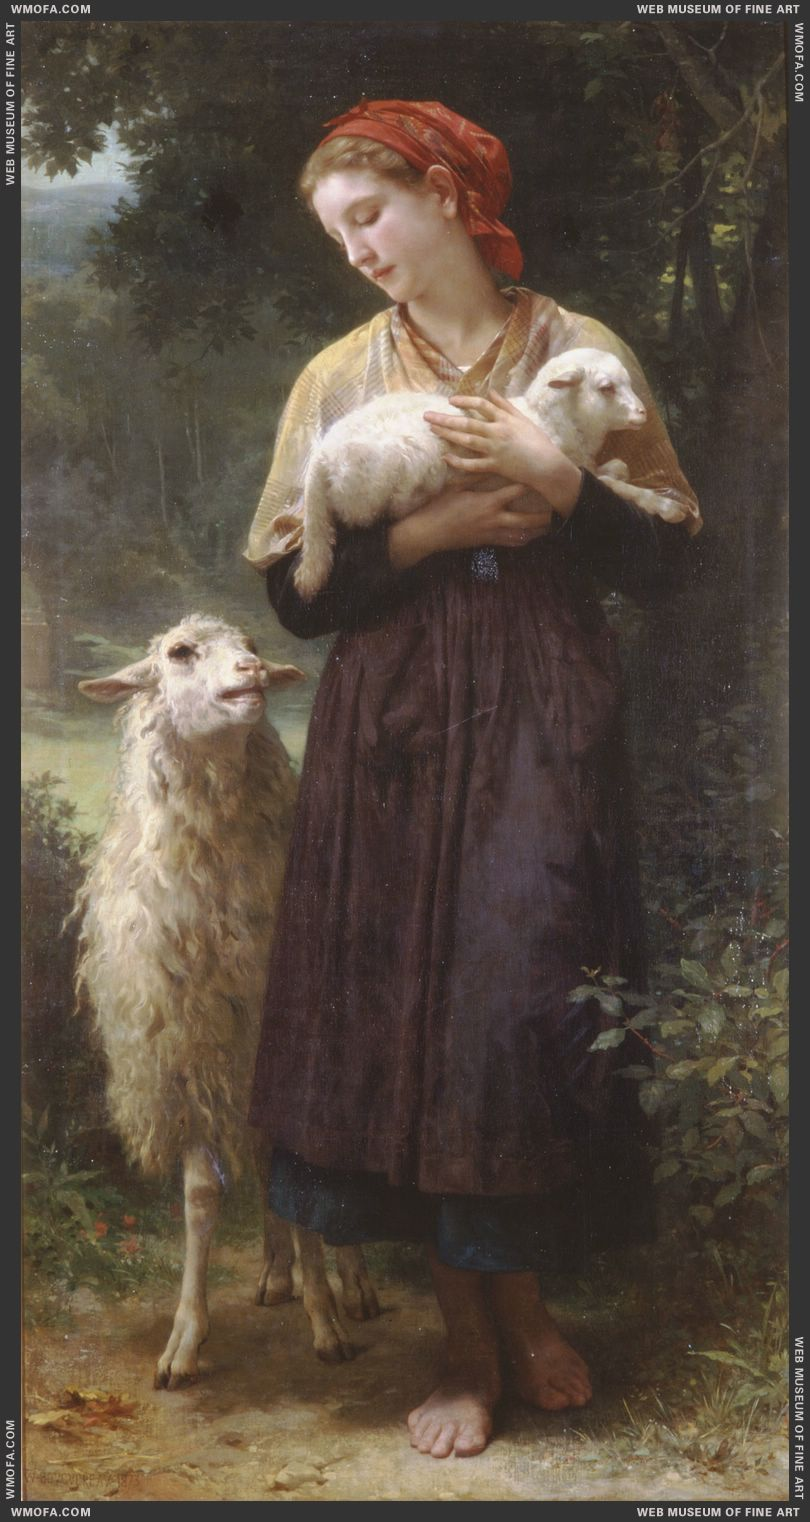 The Newborn Lamb 1873 by Bouguereau, William